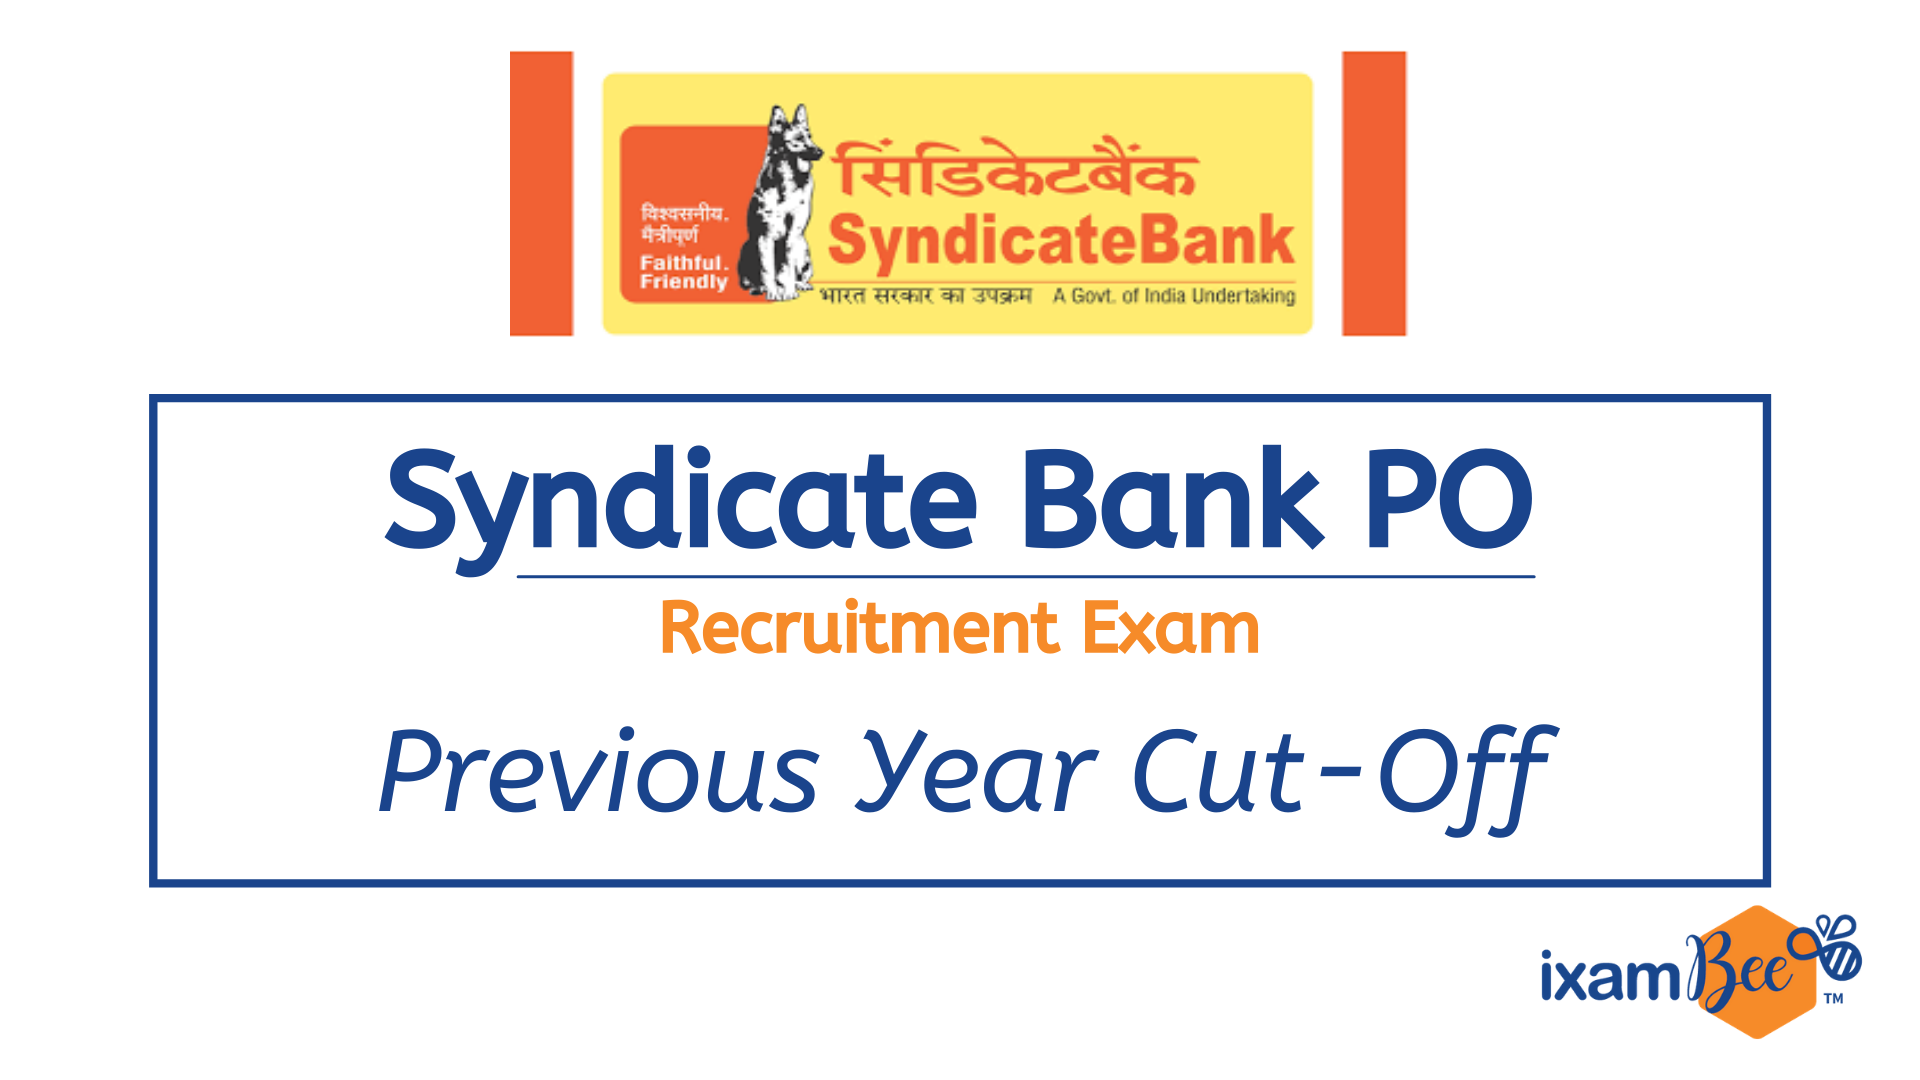 Syndicate Bank PO Recruitment Exam Cut-off